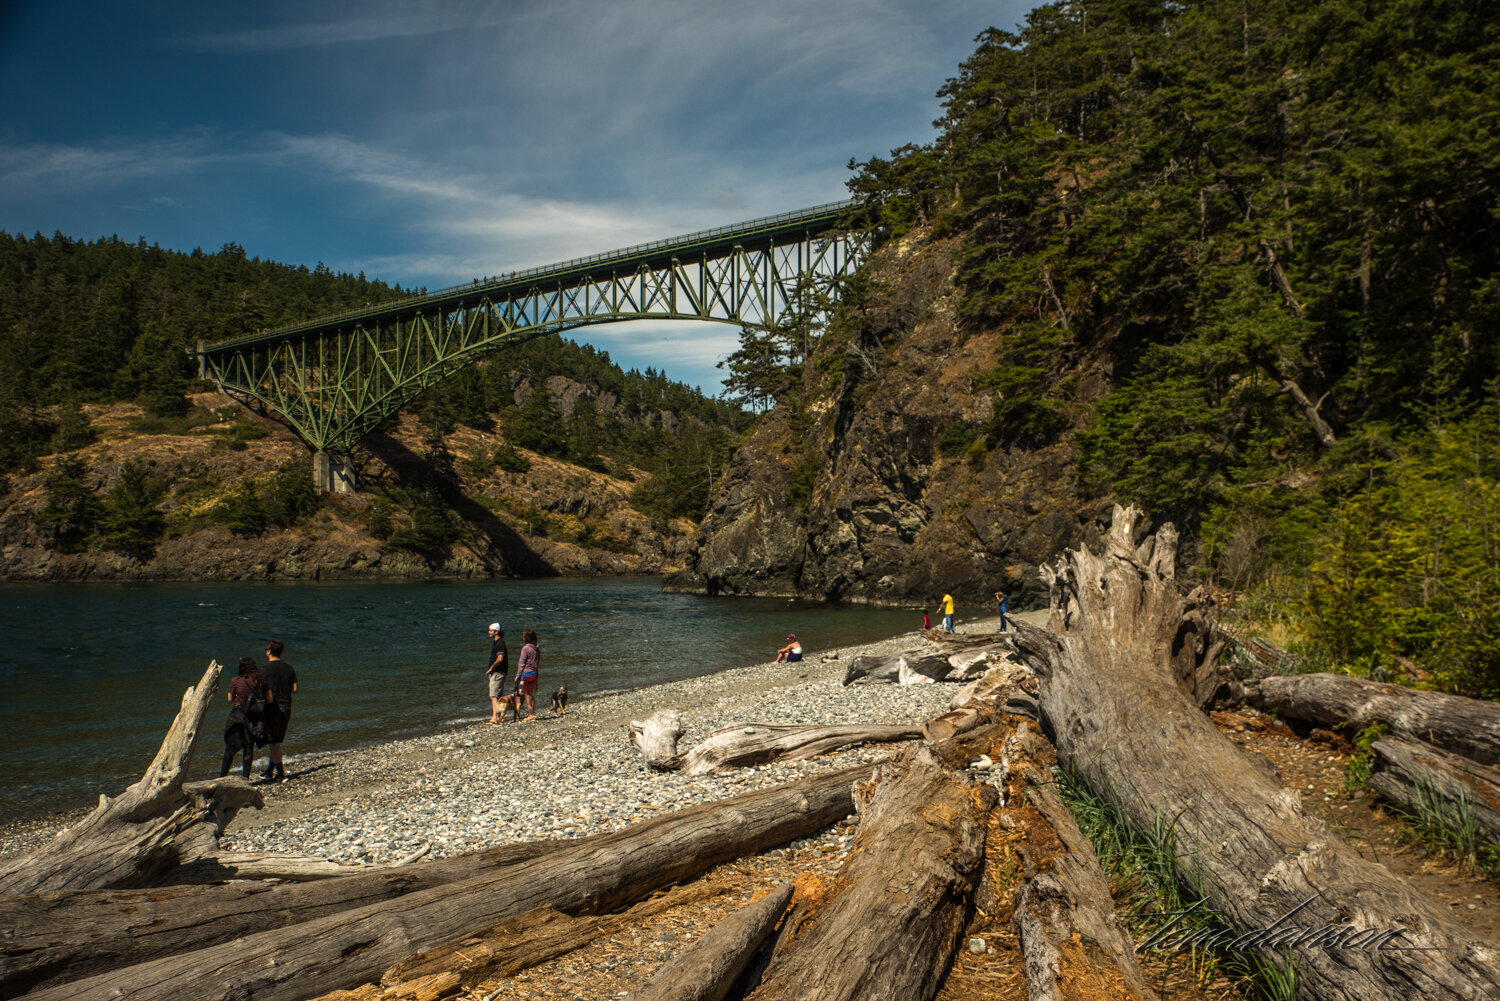 Deception Pass Bridge which links Fidalgo Island to Whidby Island